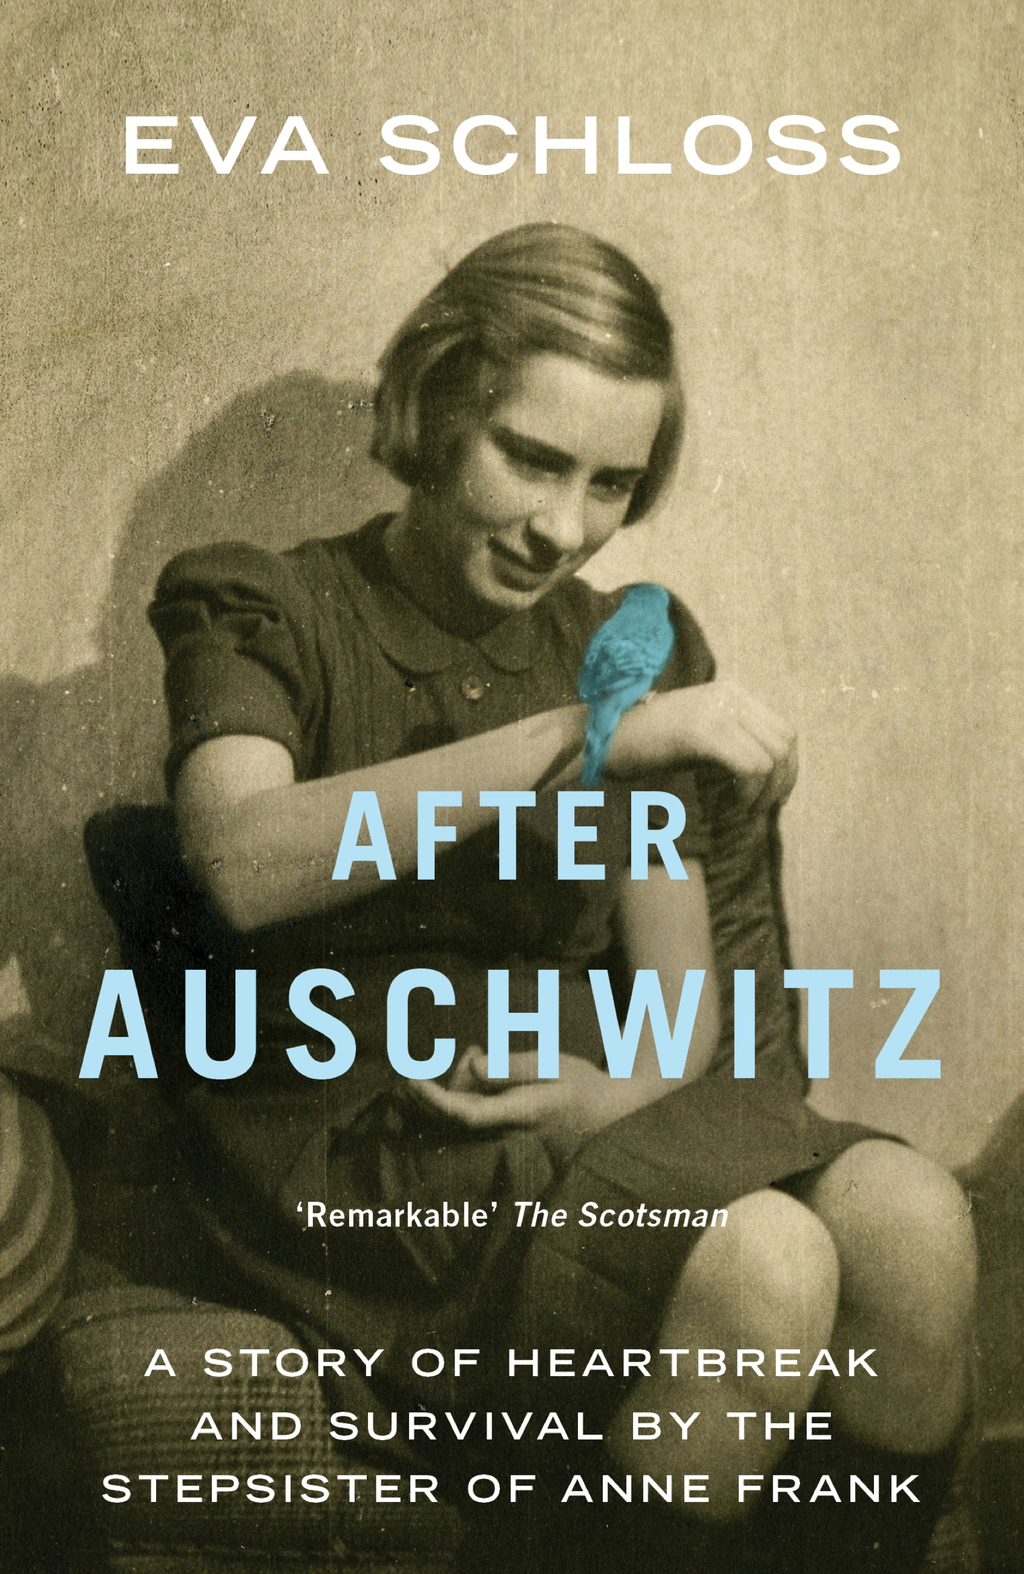 After Auschwitz A story of heartbreak and survival by the stepsister of Anne Frank